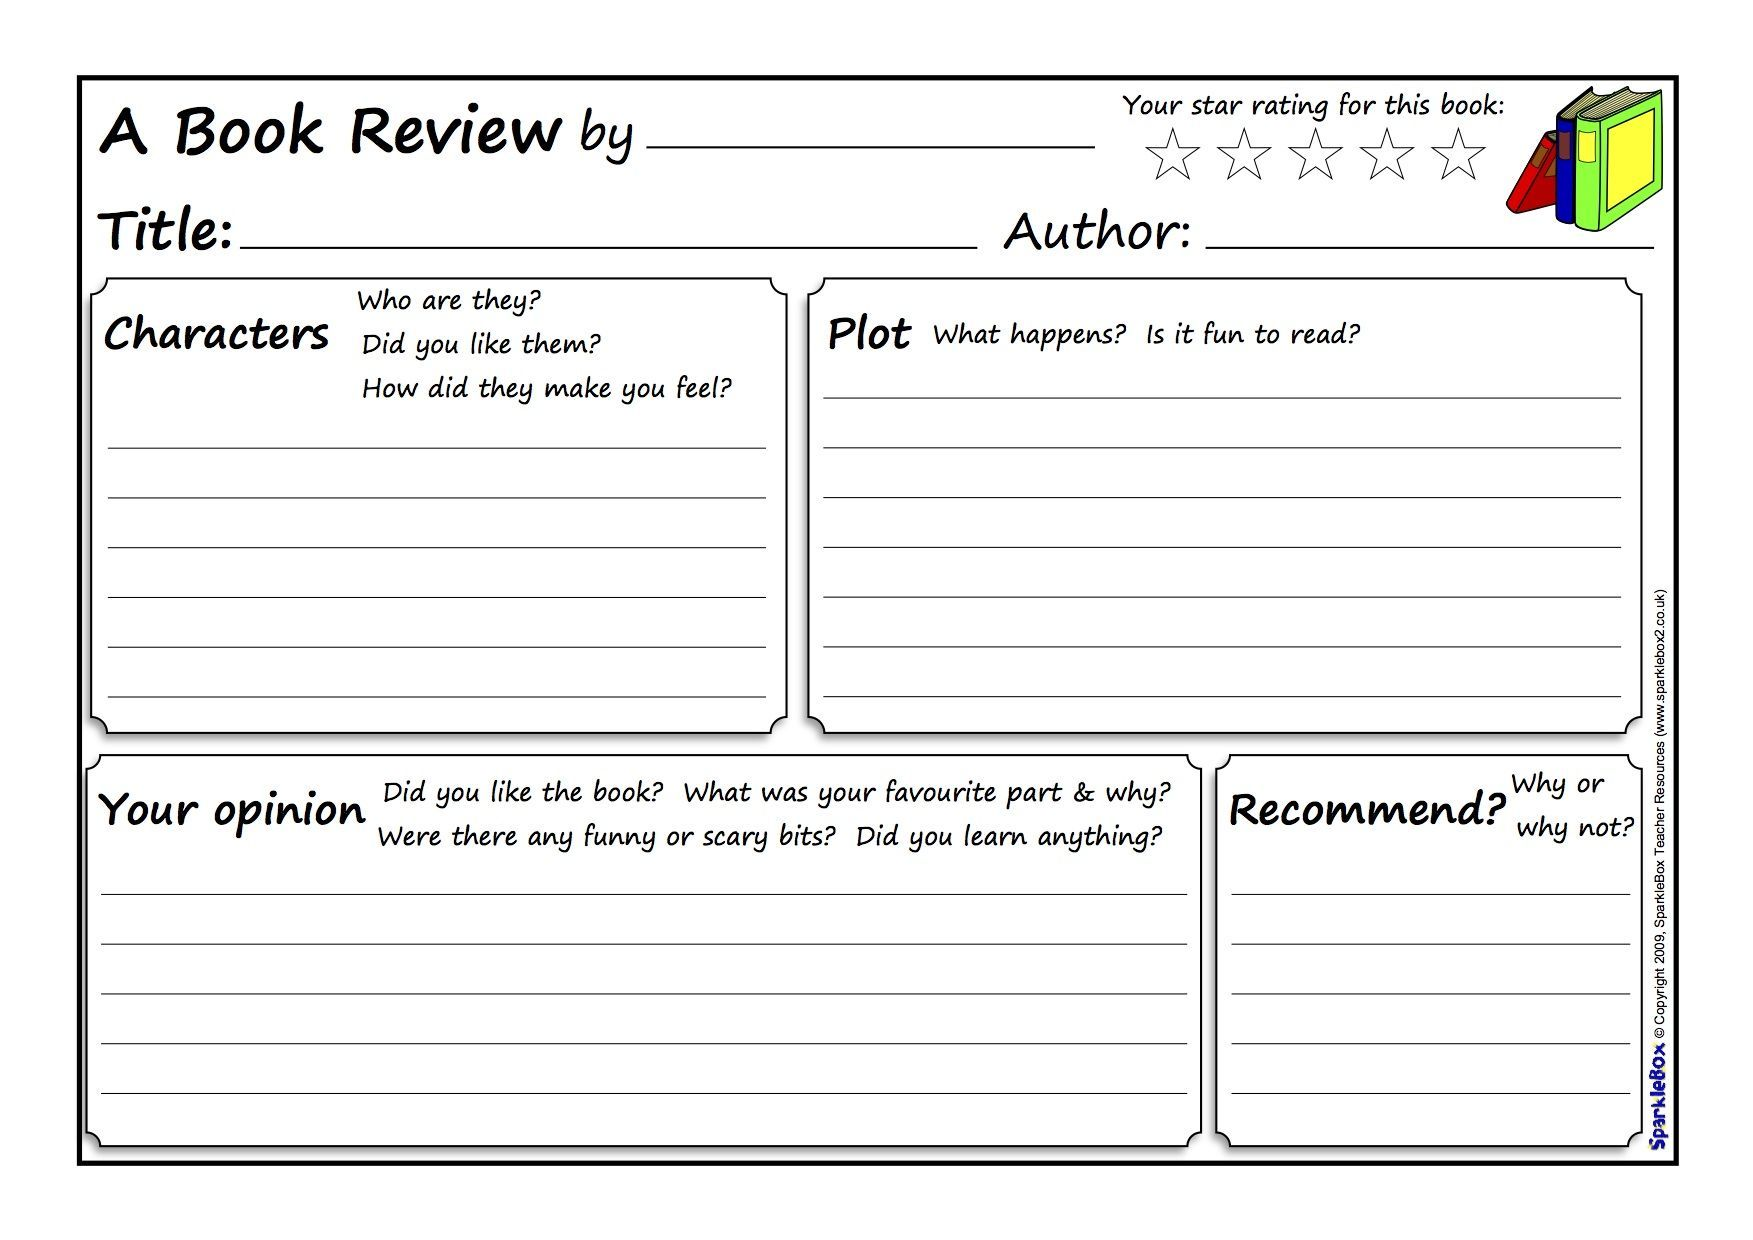 Book review template Writing a book review, Book review